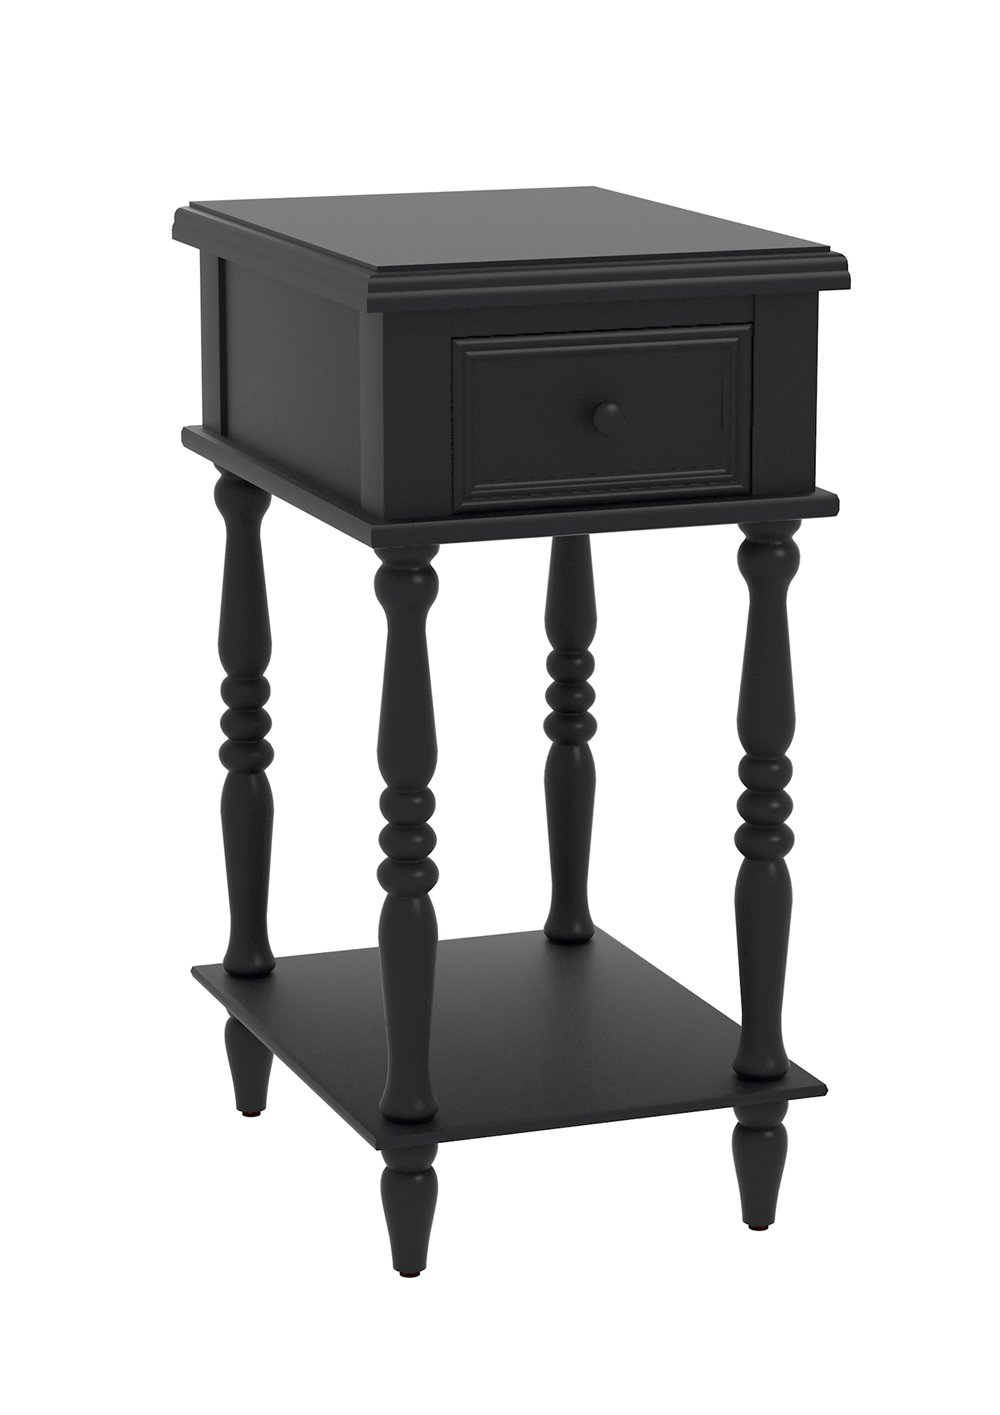 urbanest adams accent end table with drawer inch tall black kitchen dining metal coffee drawers distressed wood set glass legs top room unfinished furniture feet white farmhouse